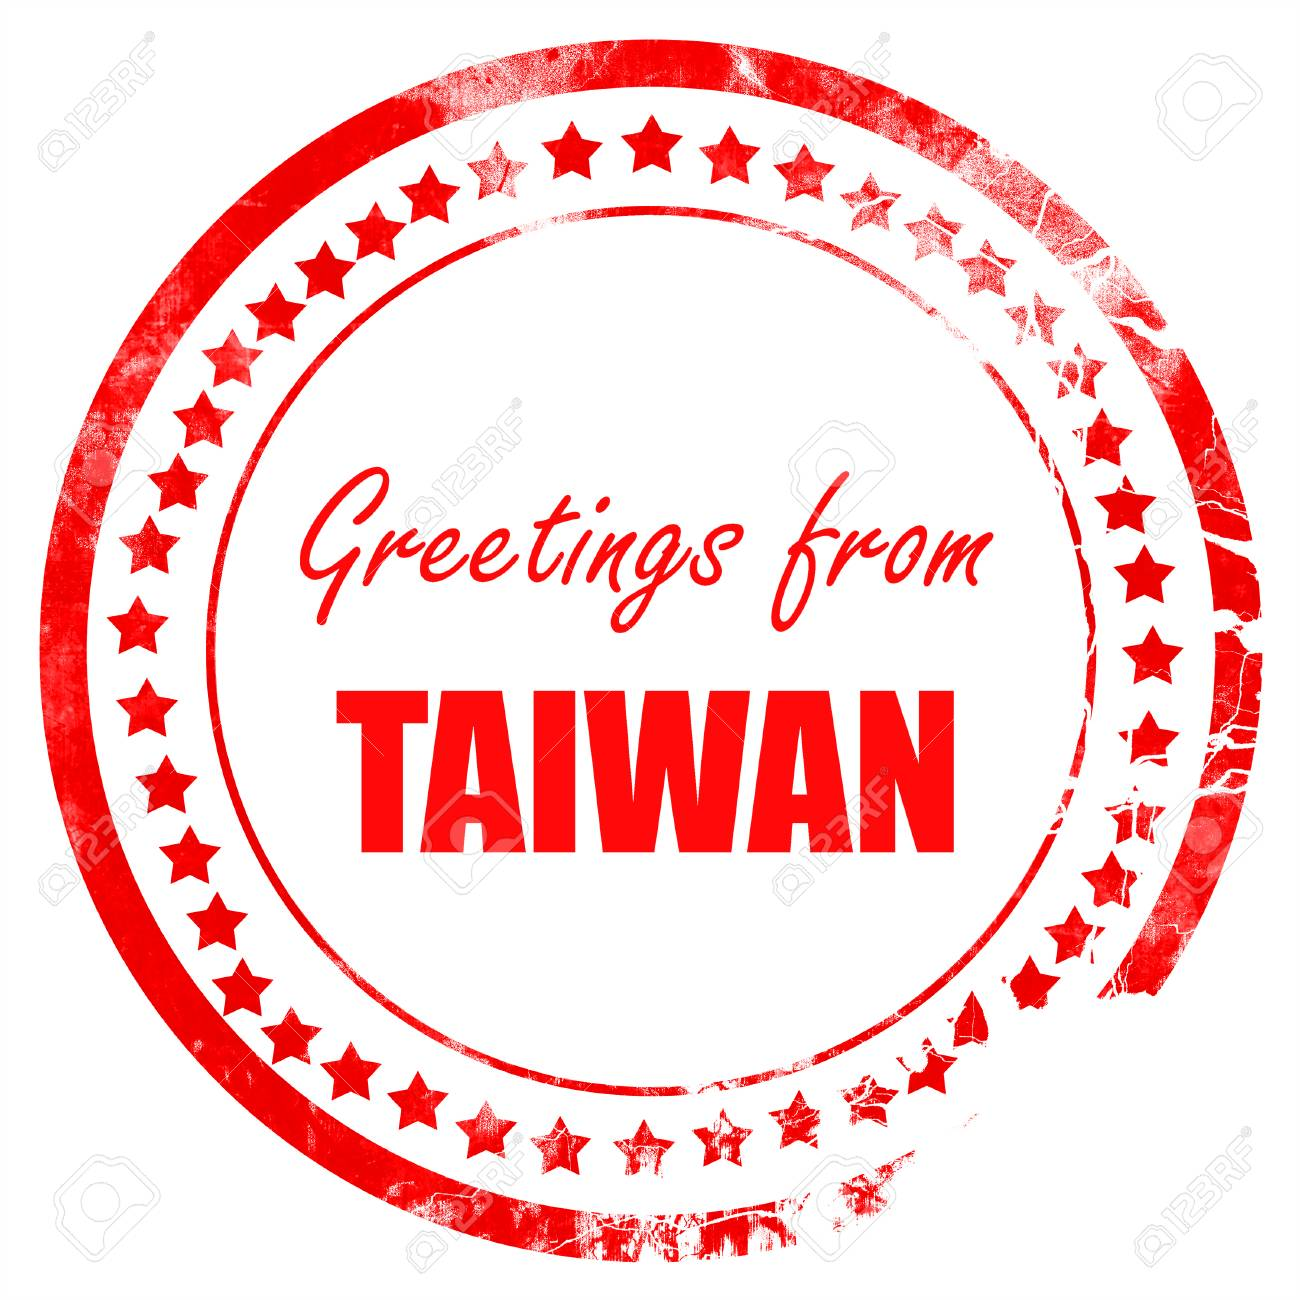 Greetings from taiwan card with some soft highlights stock photo greetings from taiwan card with some soft highlights stock photo 53784883 m4hsunfo